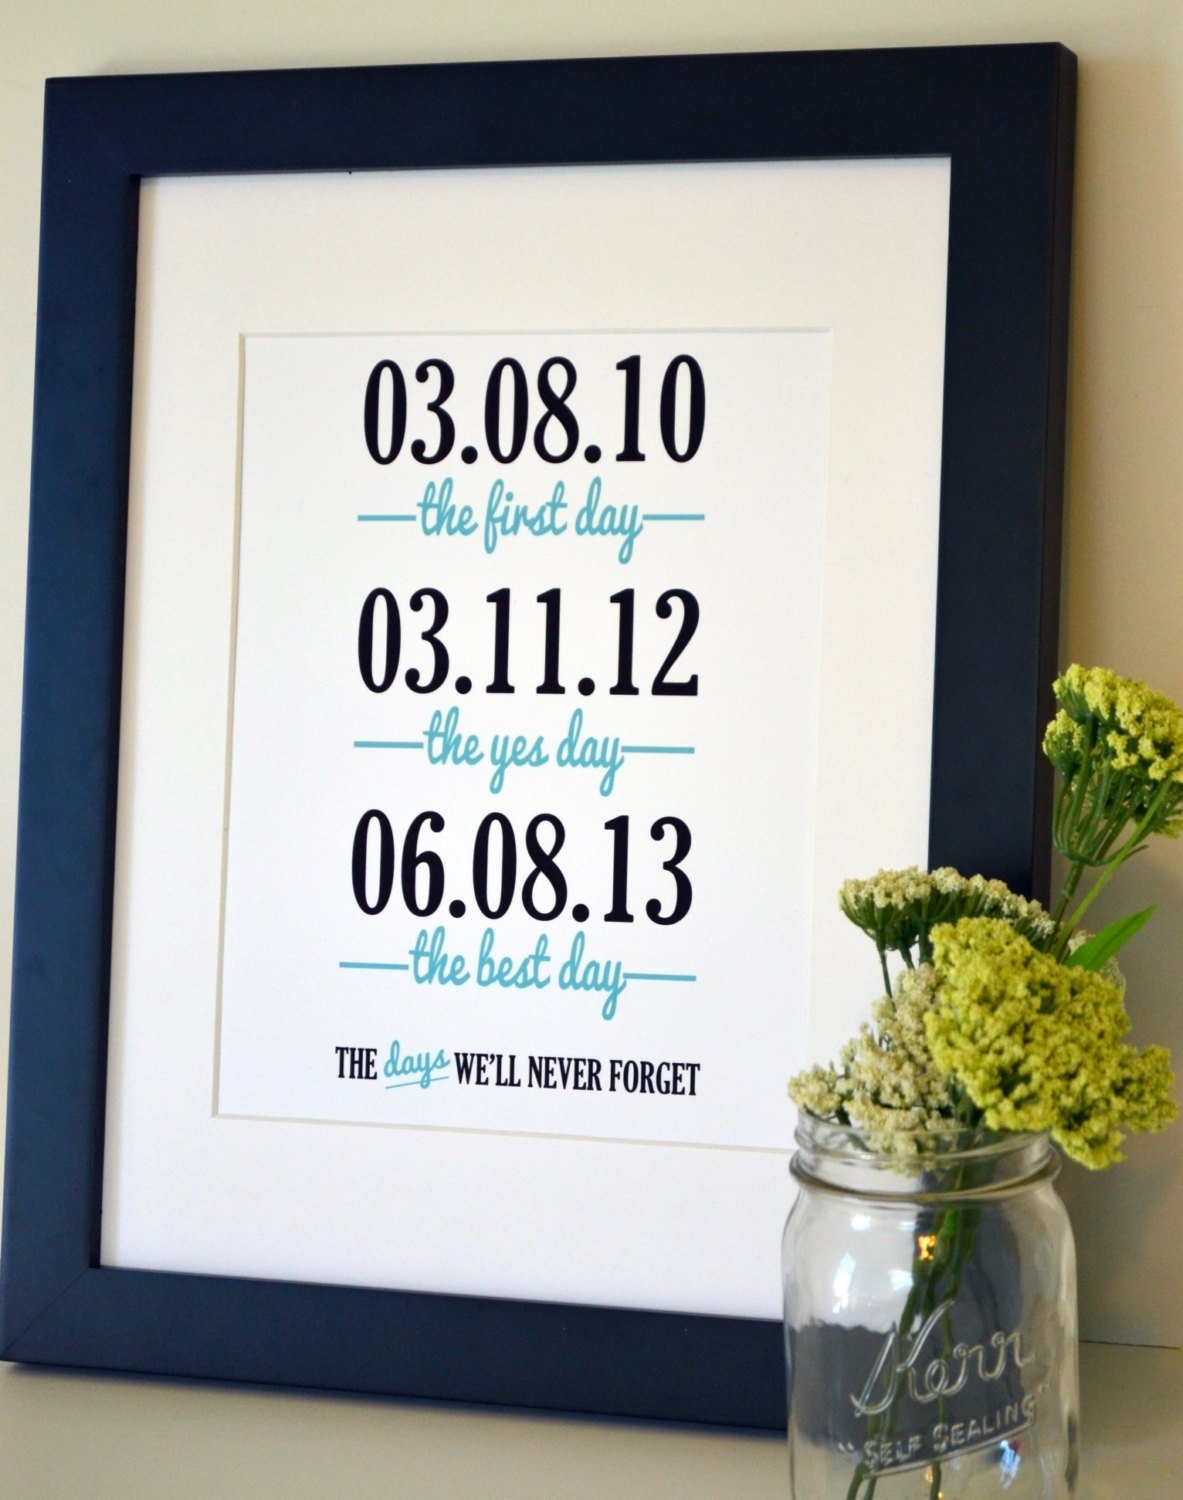 10 Elegant 3Rd Year Anniversary Gift Ideas For Her good first wedding anniversary gift ideas b32 on images selection 4 2020